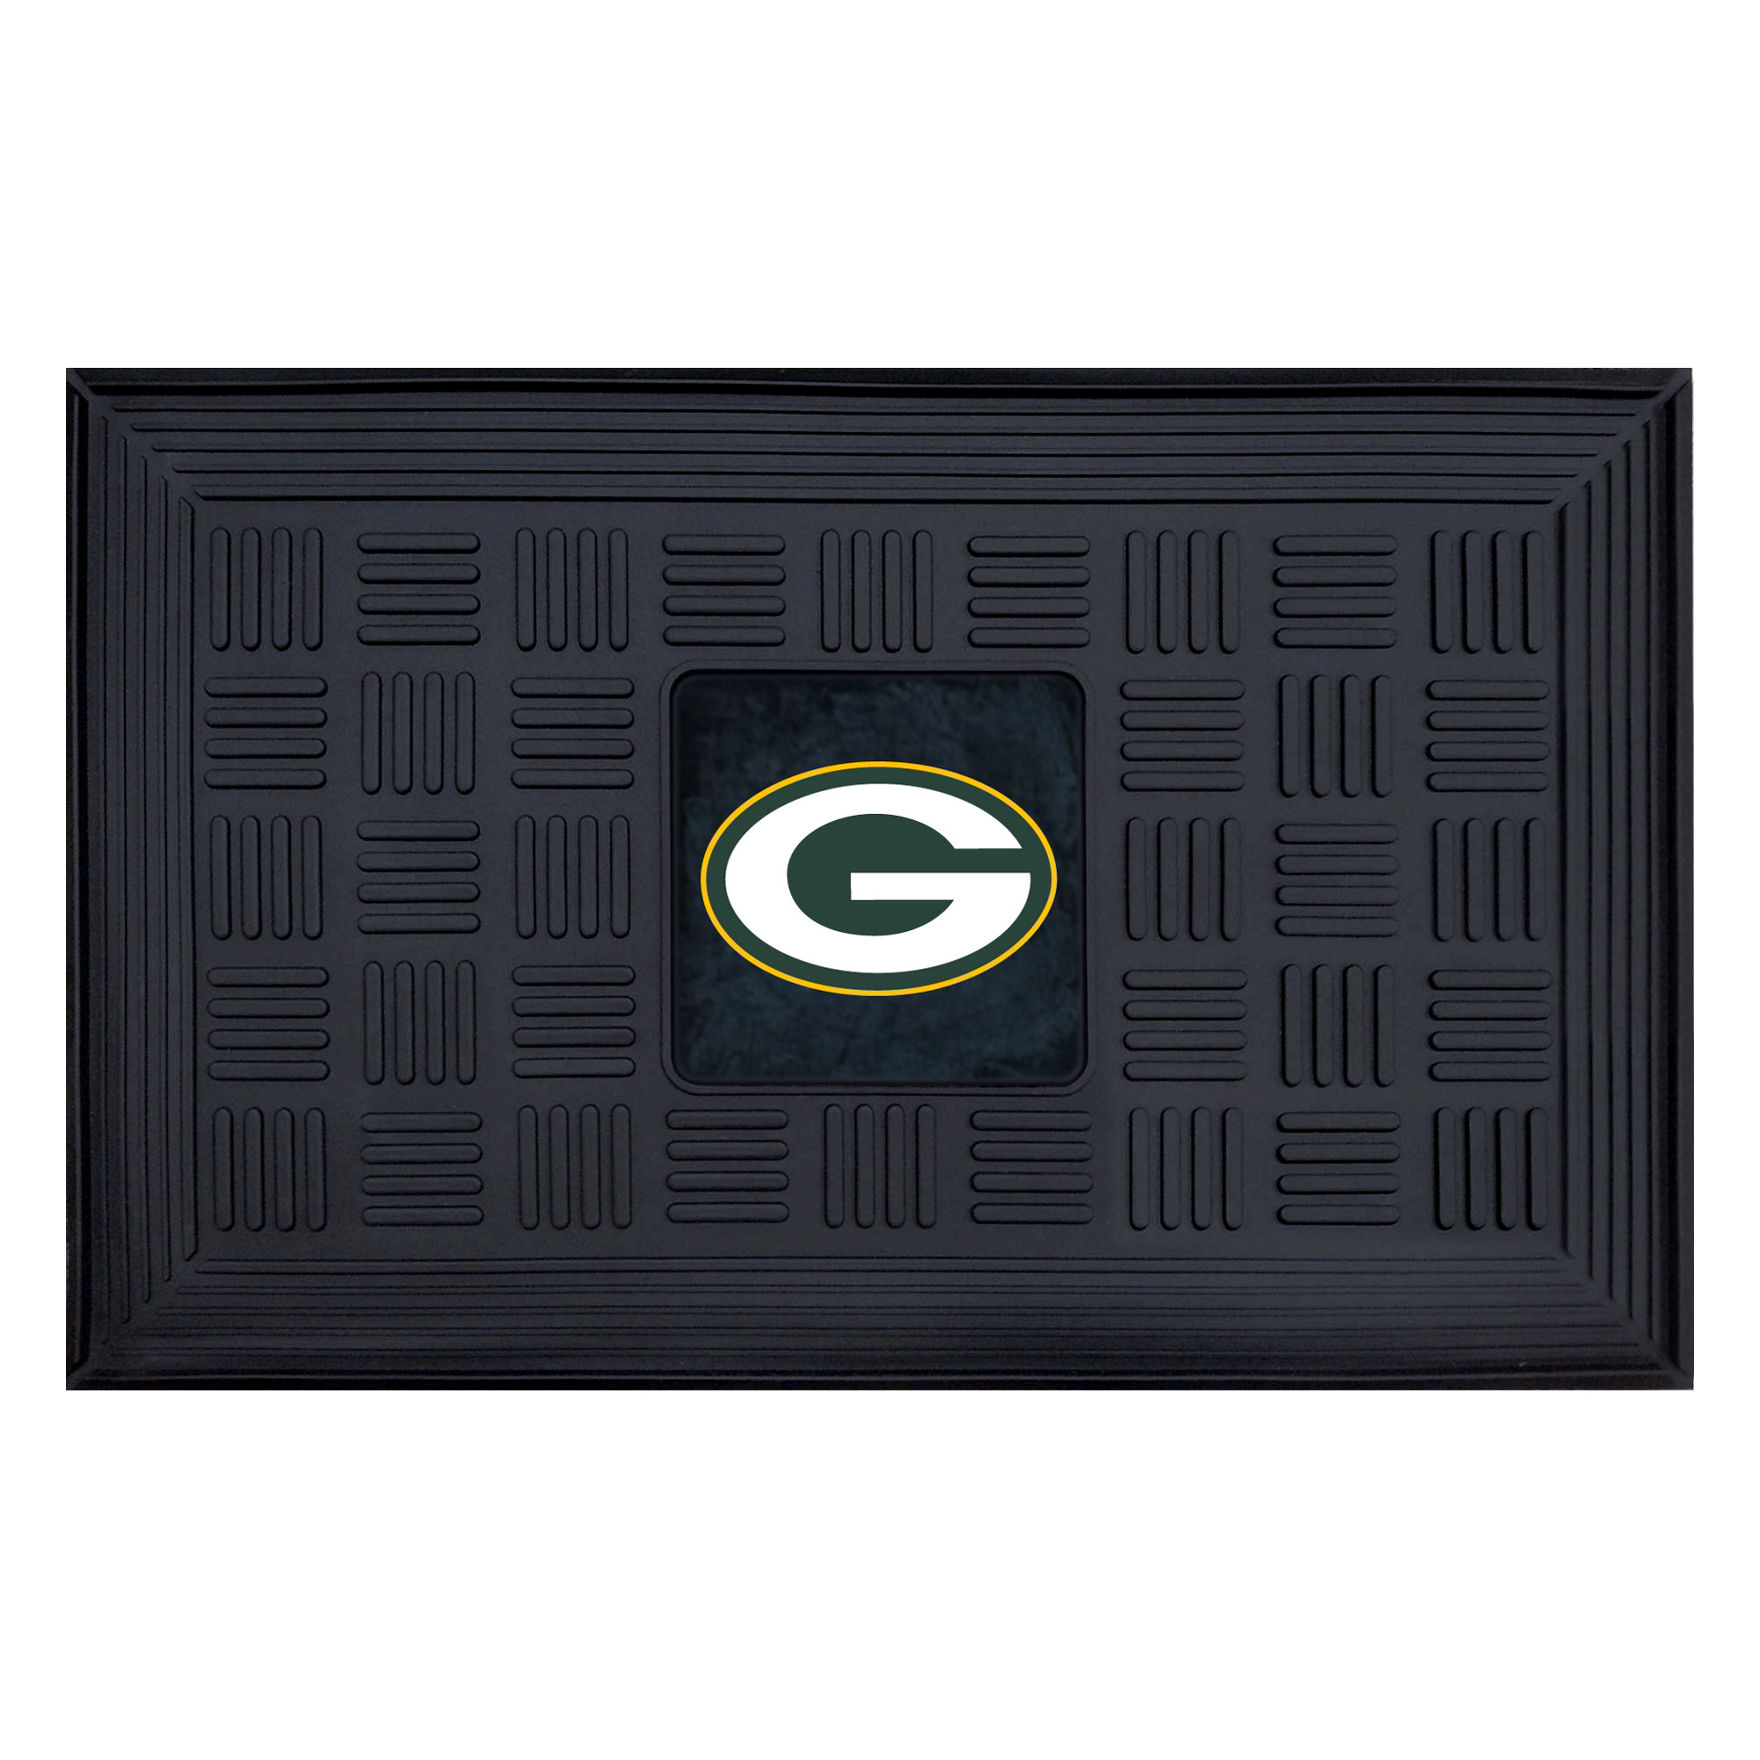 Fanmats Black Outdoor Rugs & Doormats NFL Outdoor Decor